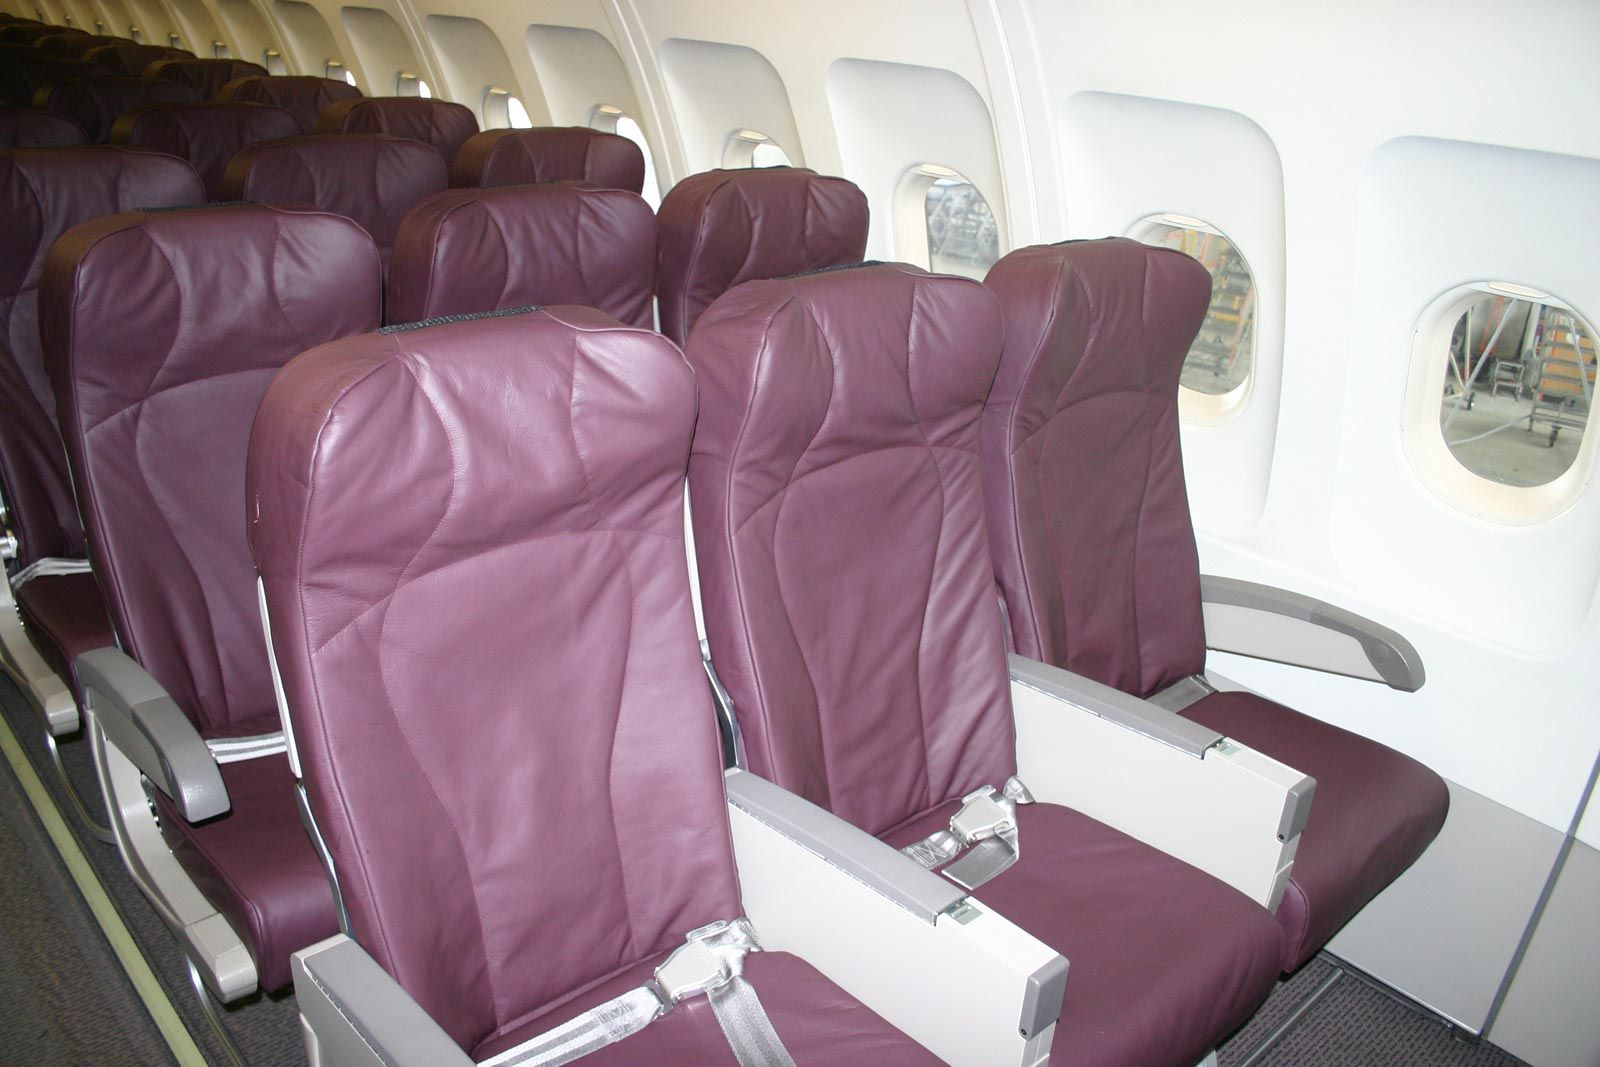 Wizz Air Http Jamaero Com Airlines Airline Wizz Air Vengriya Airlines Air Airline